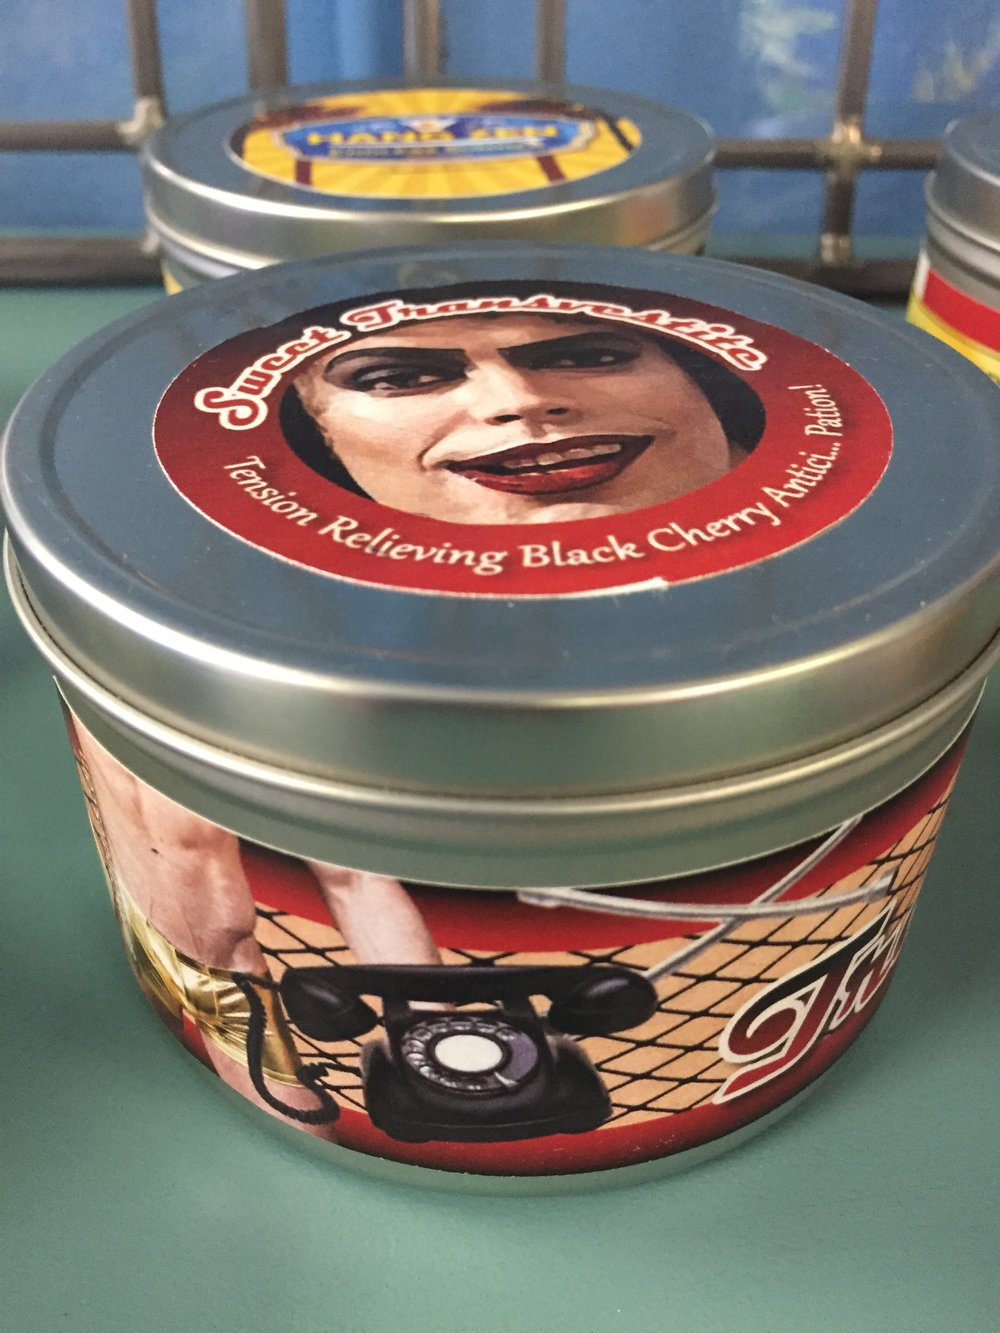 Sweet Transvestite Candle